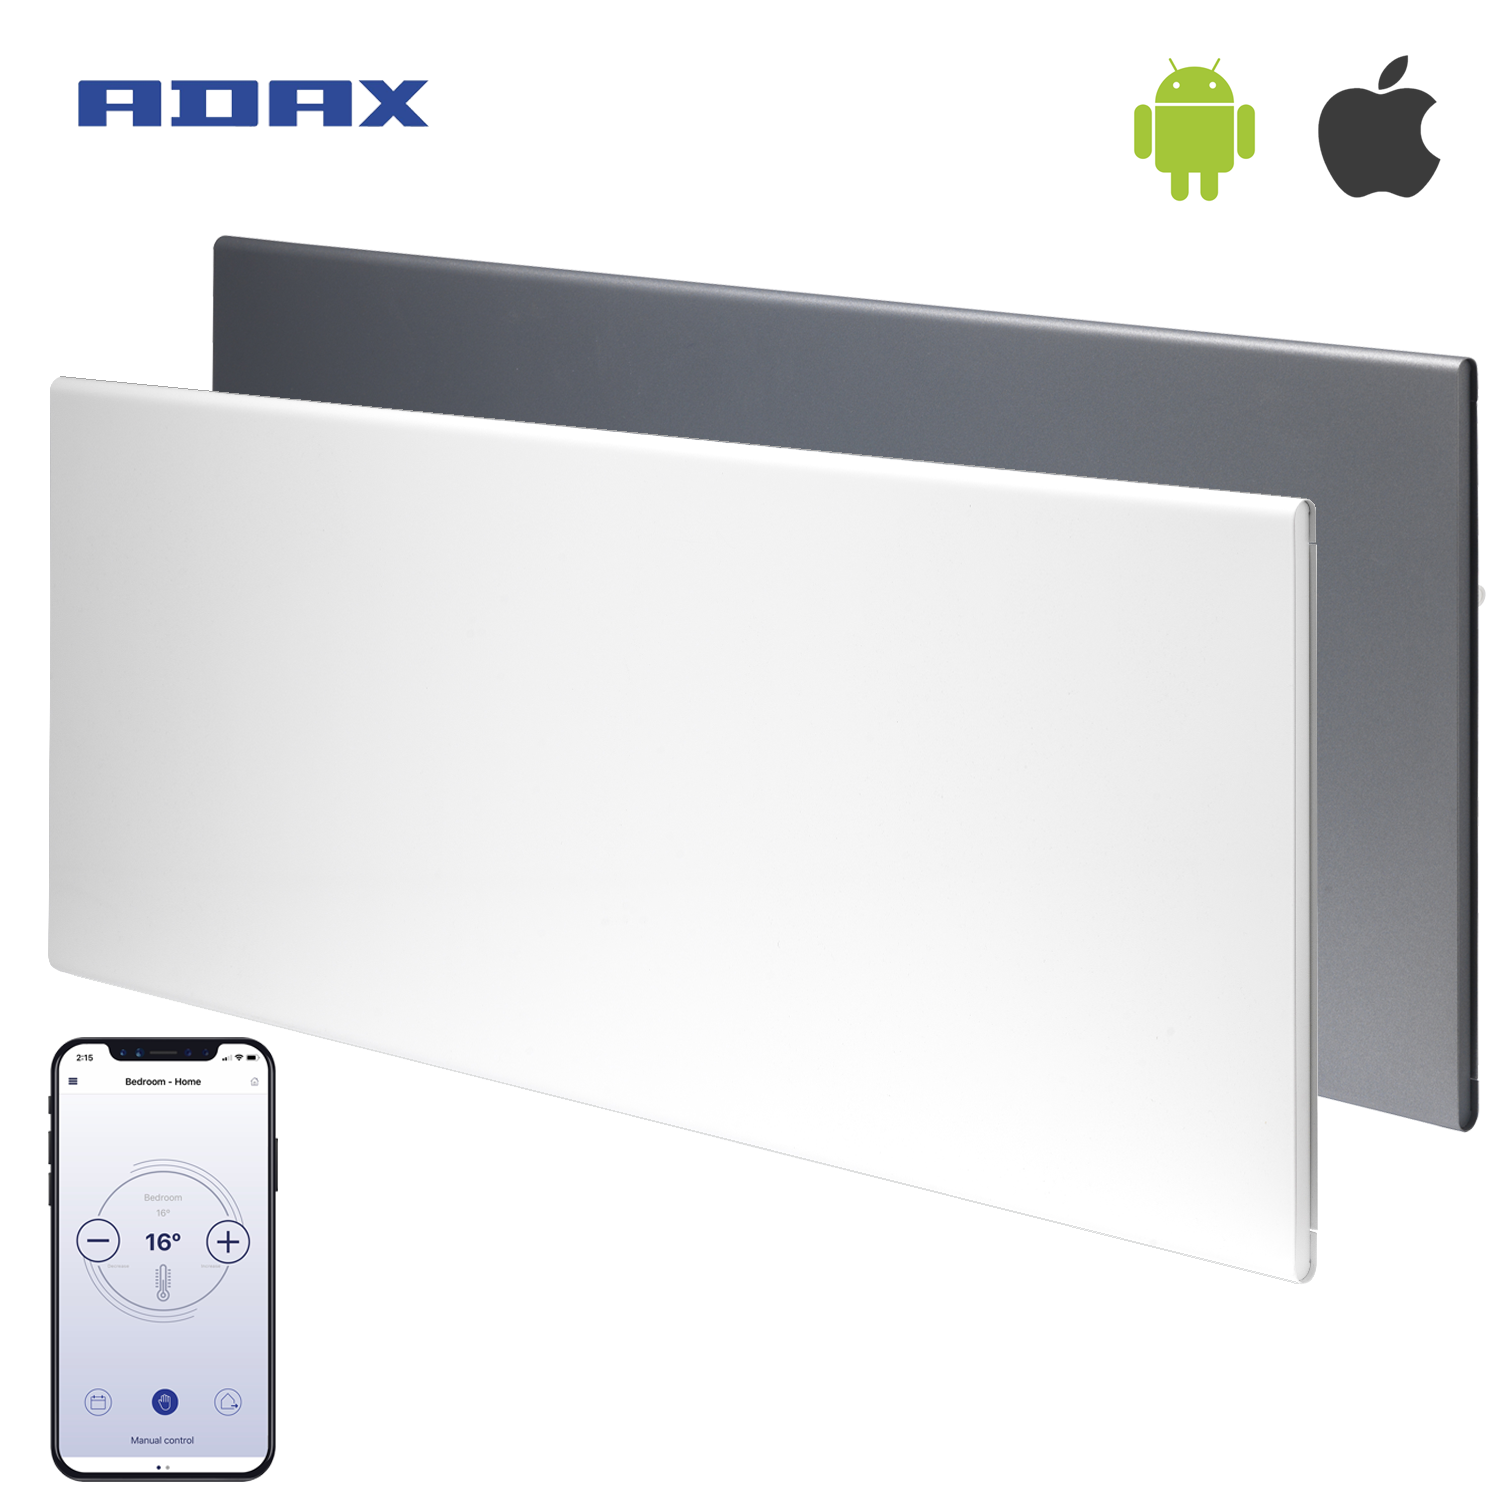 Adax Neo Wifi Smart Electric Panel Heater Wall Mounted Timer Modern Convector Radiator Electric Radiators Save Energy Electricity